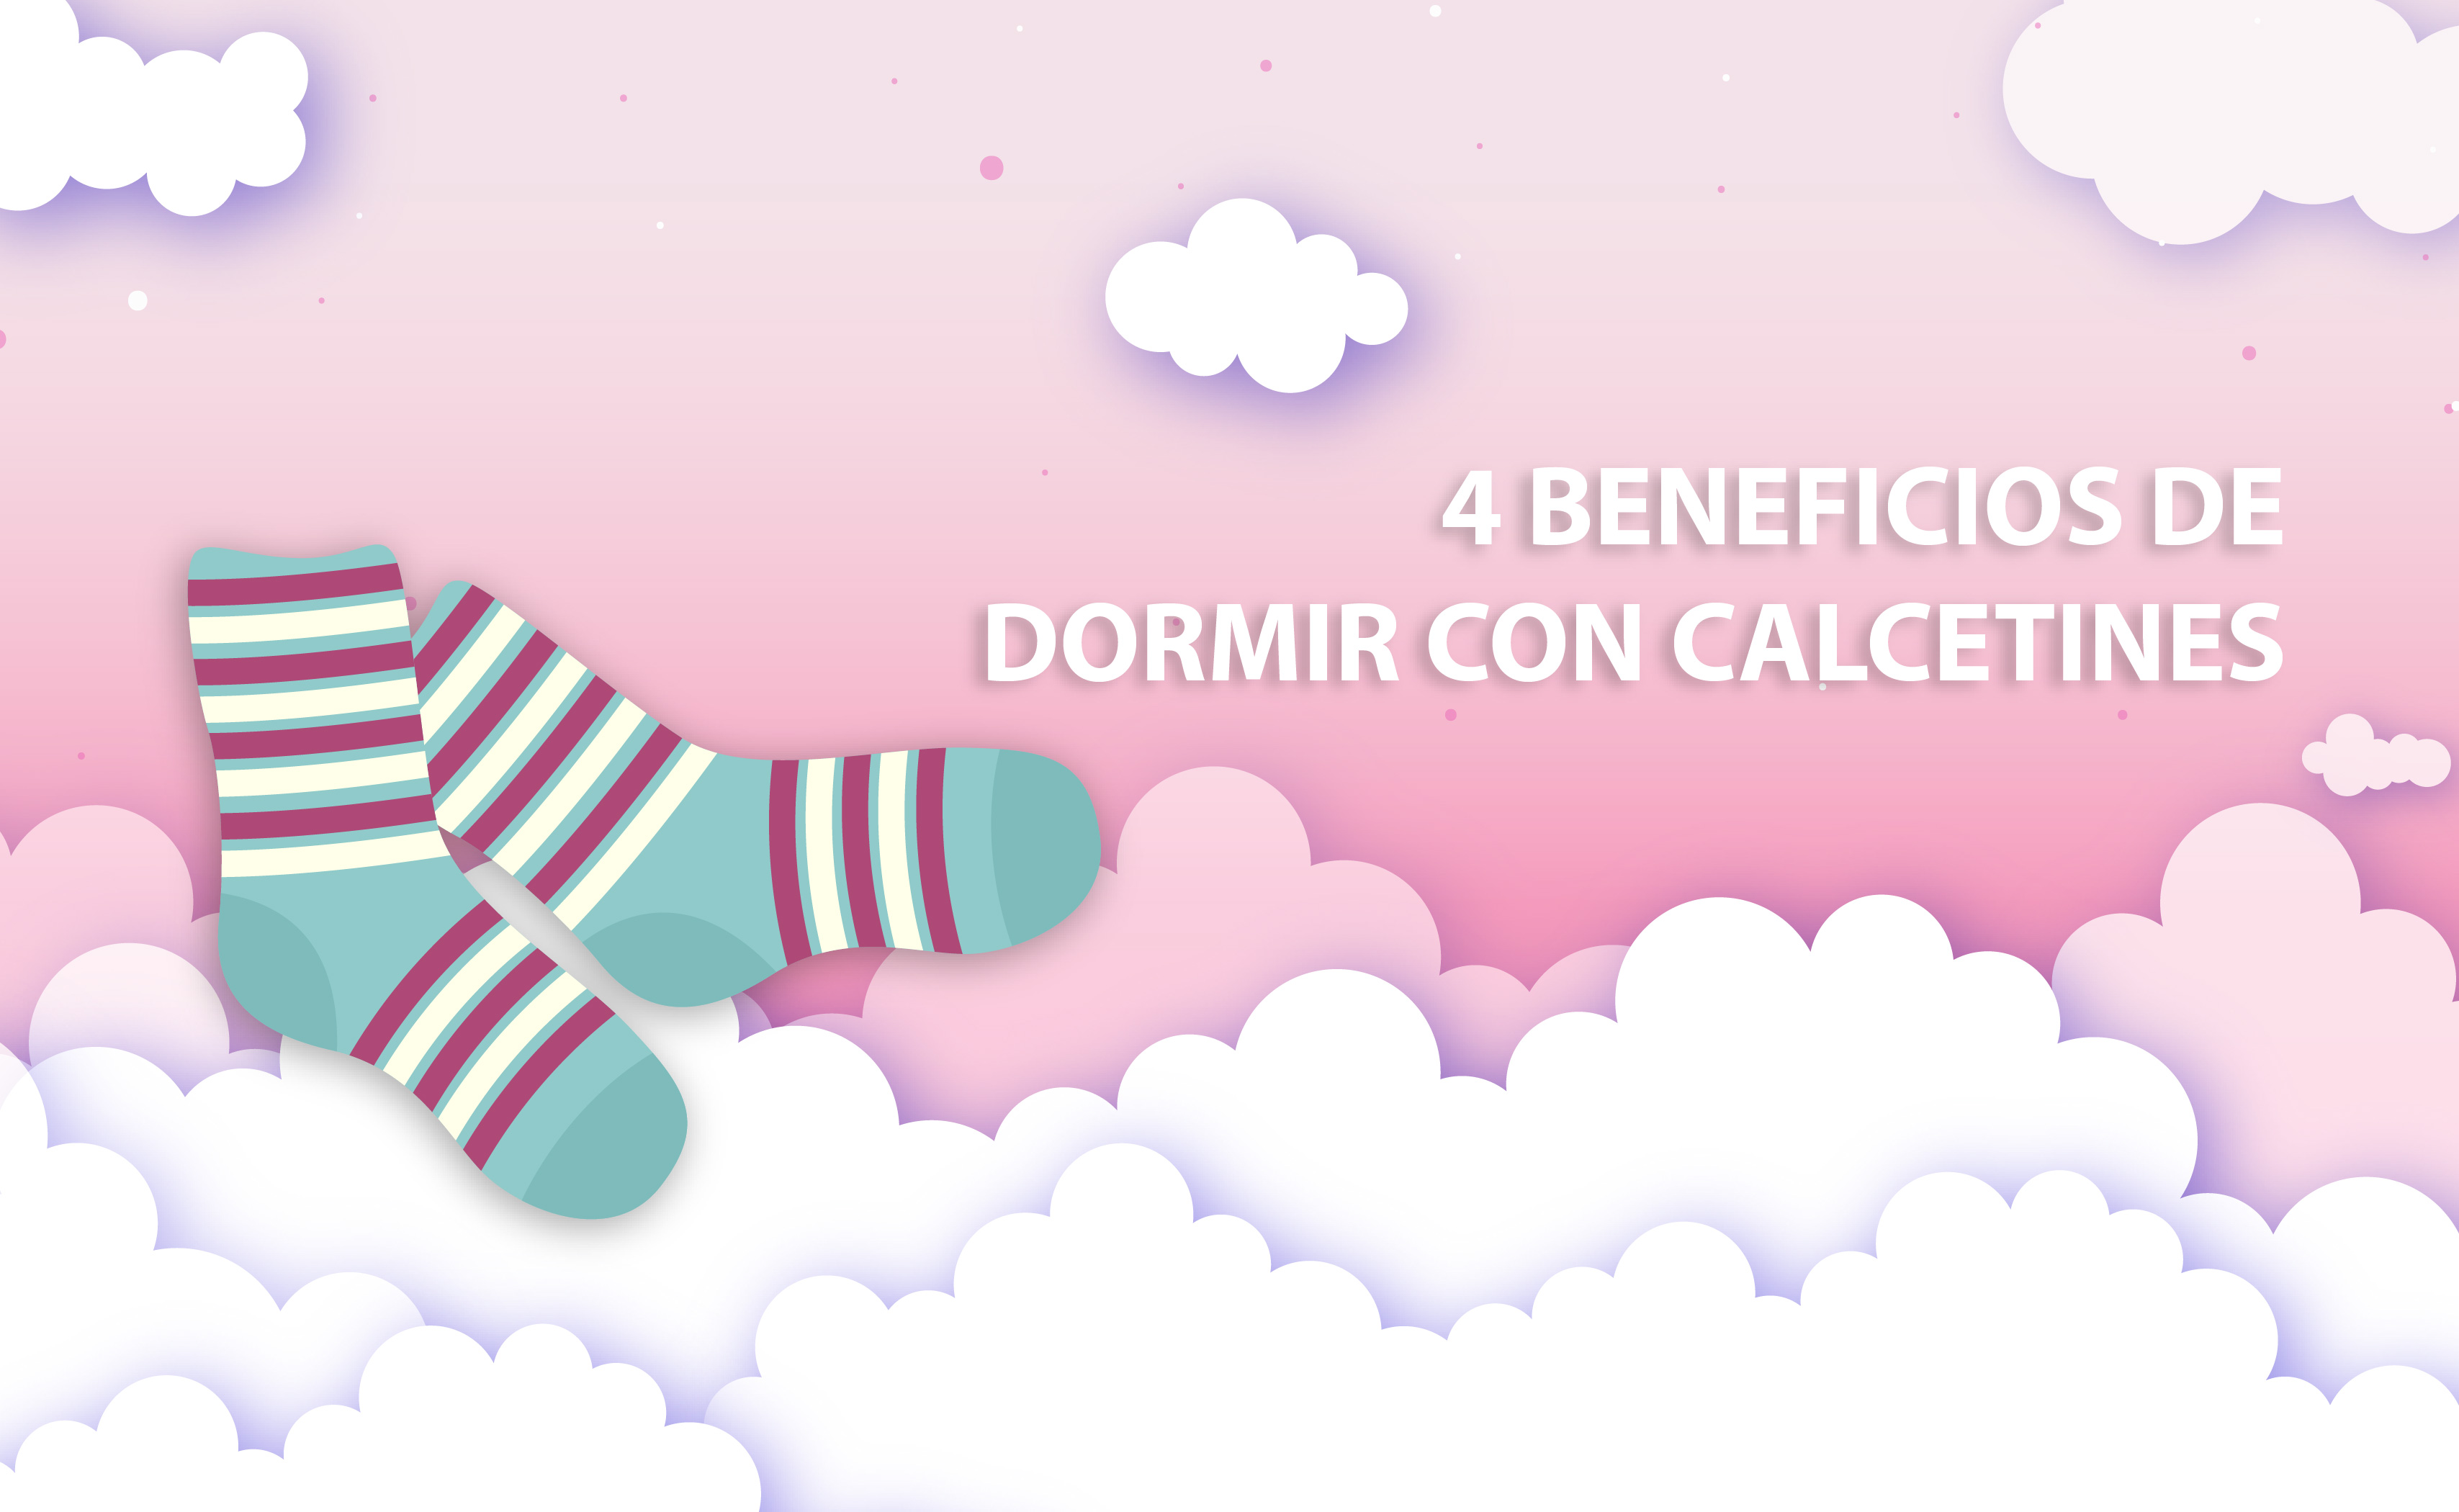 4 beneficios de dormir con calcetines